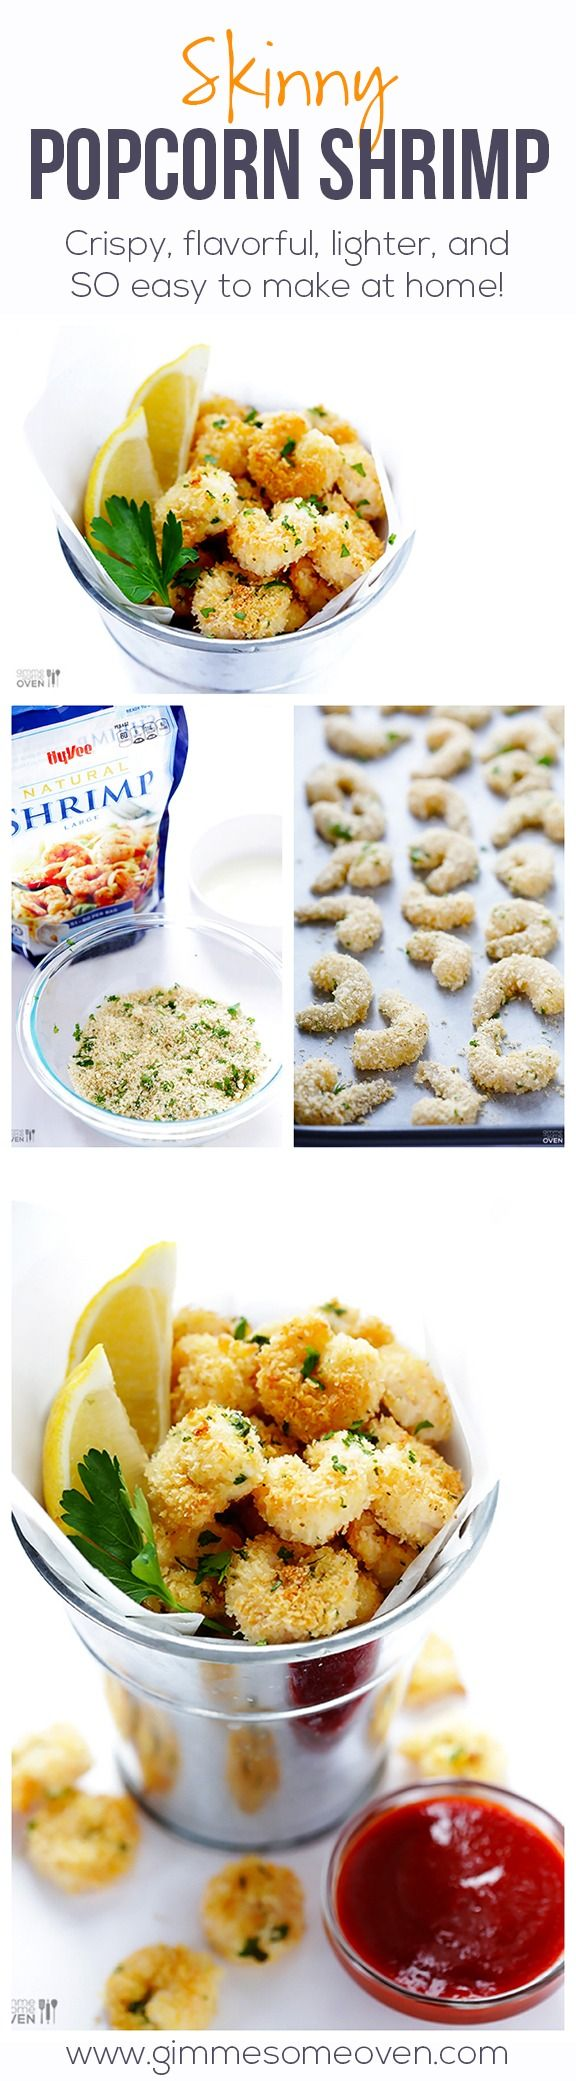 """Classic popcorn shrimp is lightened up in this easy recipe, yet still flavorful, crispy, and perfectly delicious for """"popping""""! gimmesomeoven.com #gameday #appetizer"""